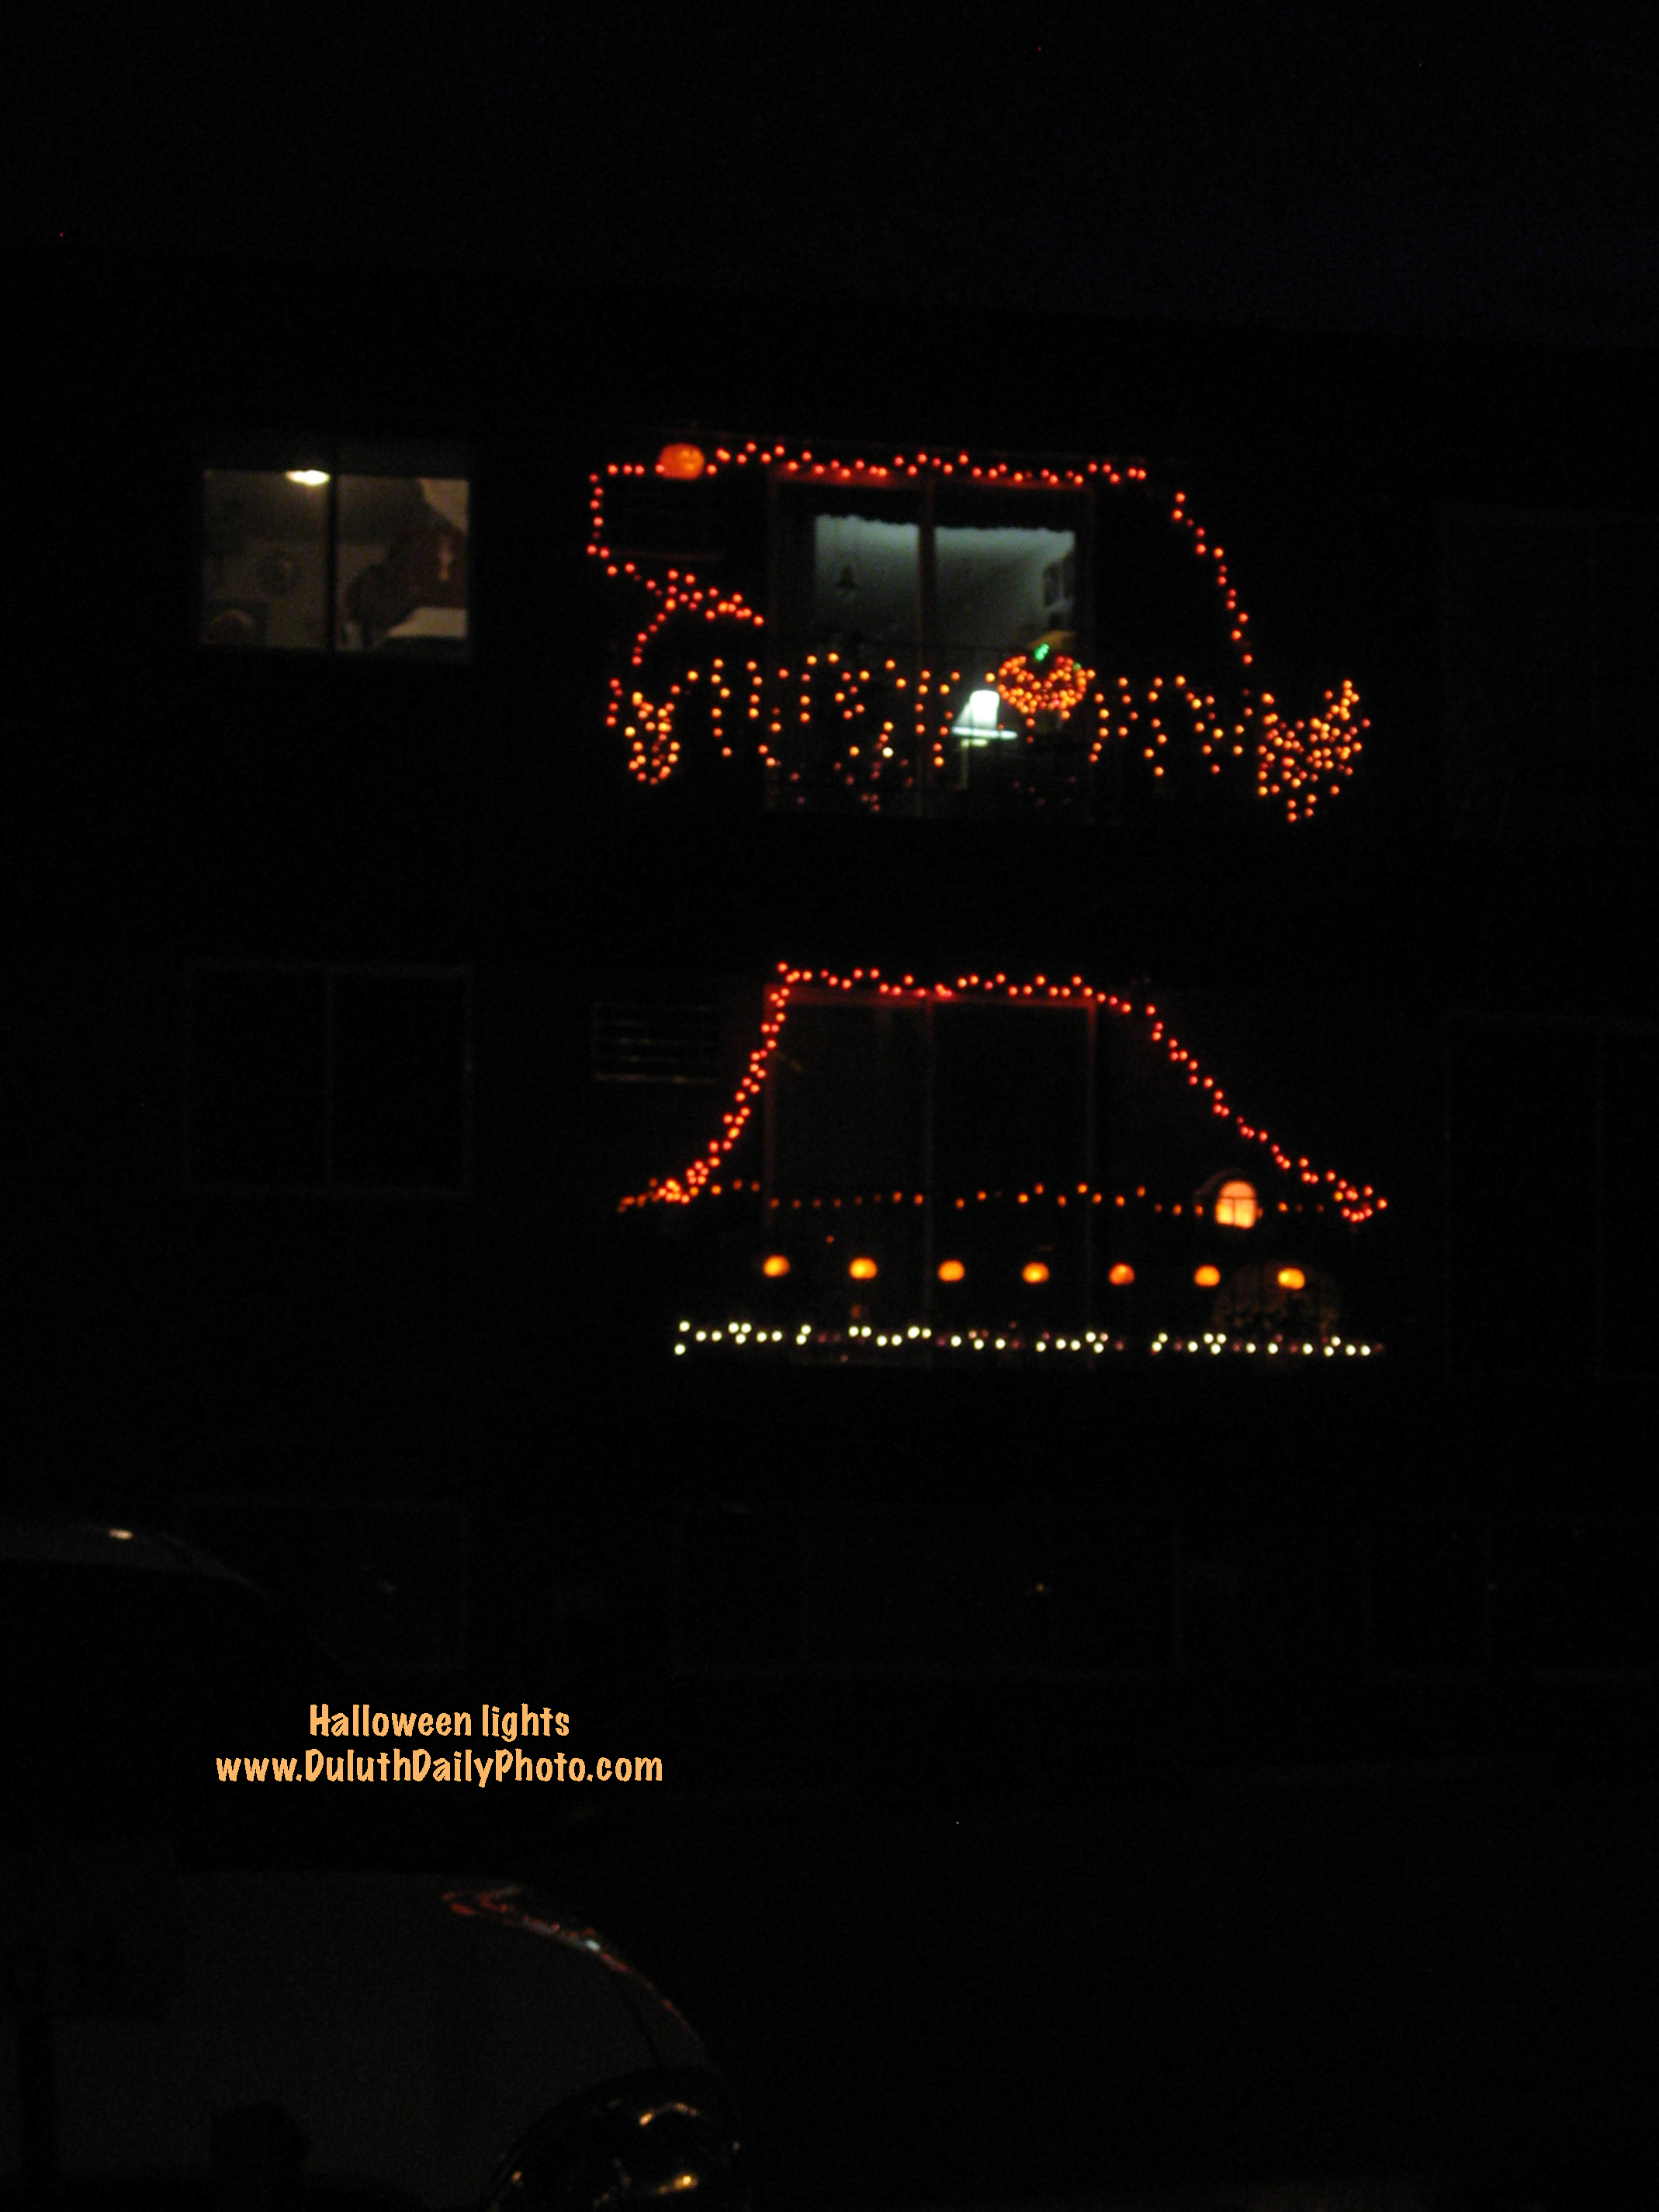 halloween decorations light up apartment balconies - Light Up Halloween Decorations